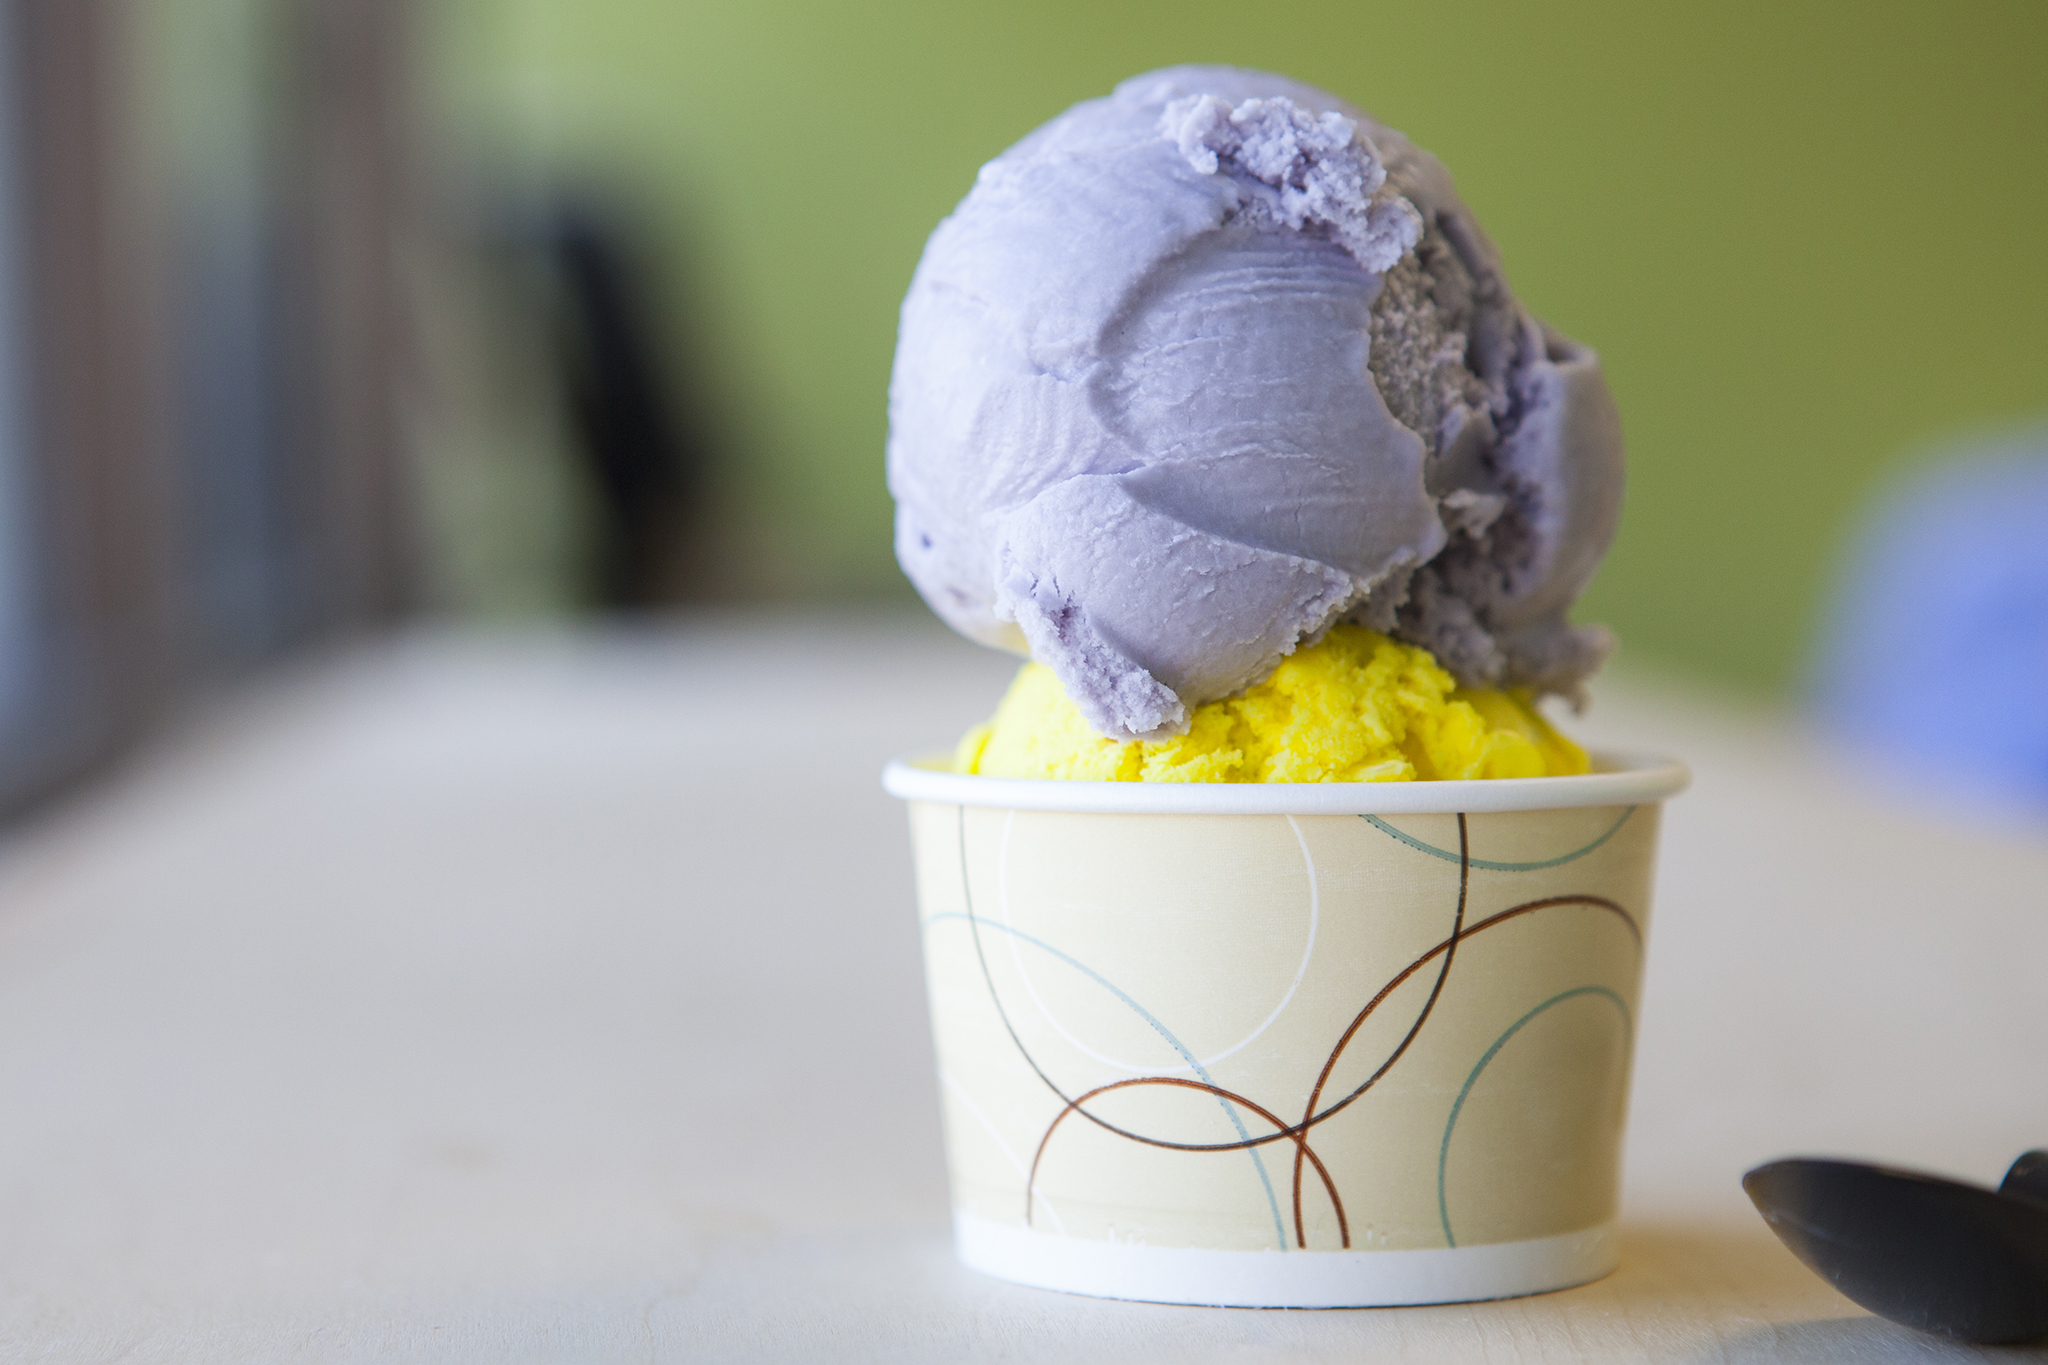 Lavender with Saffron and rosewater icecream at Mashti Malone's Ice Cream